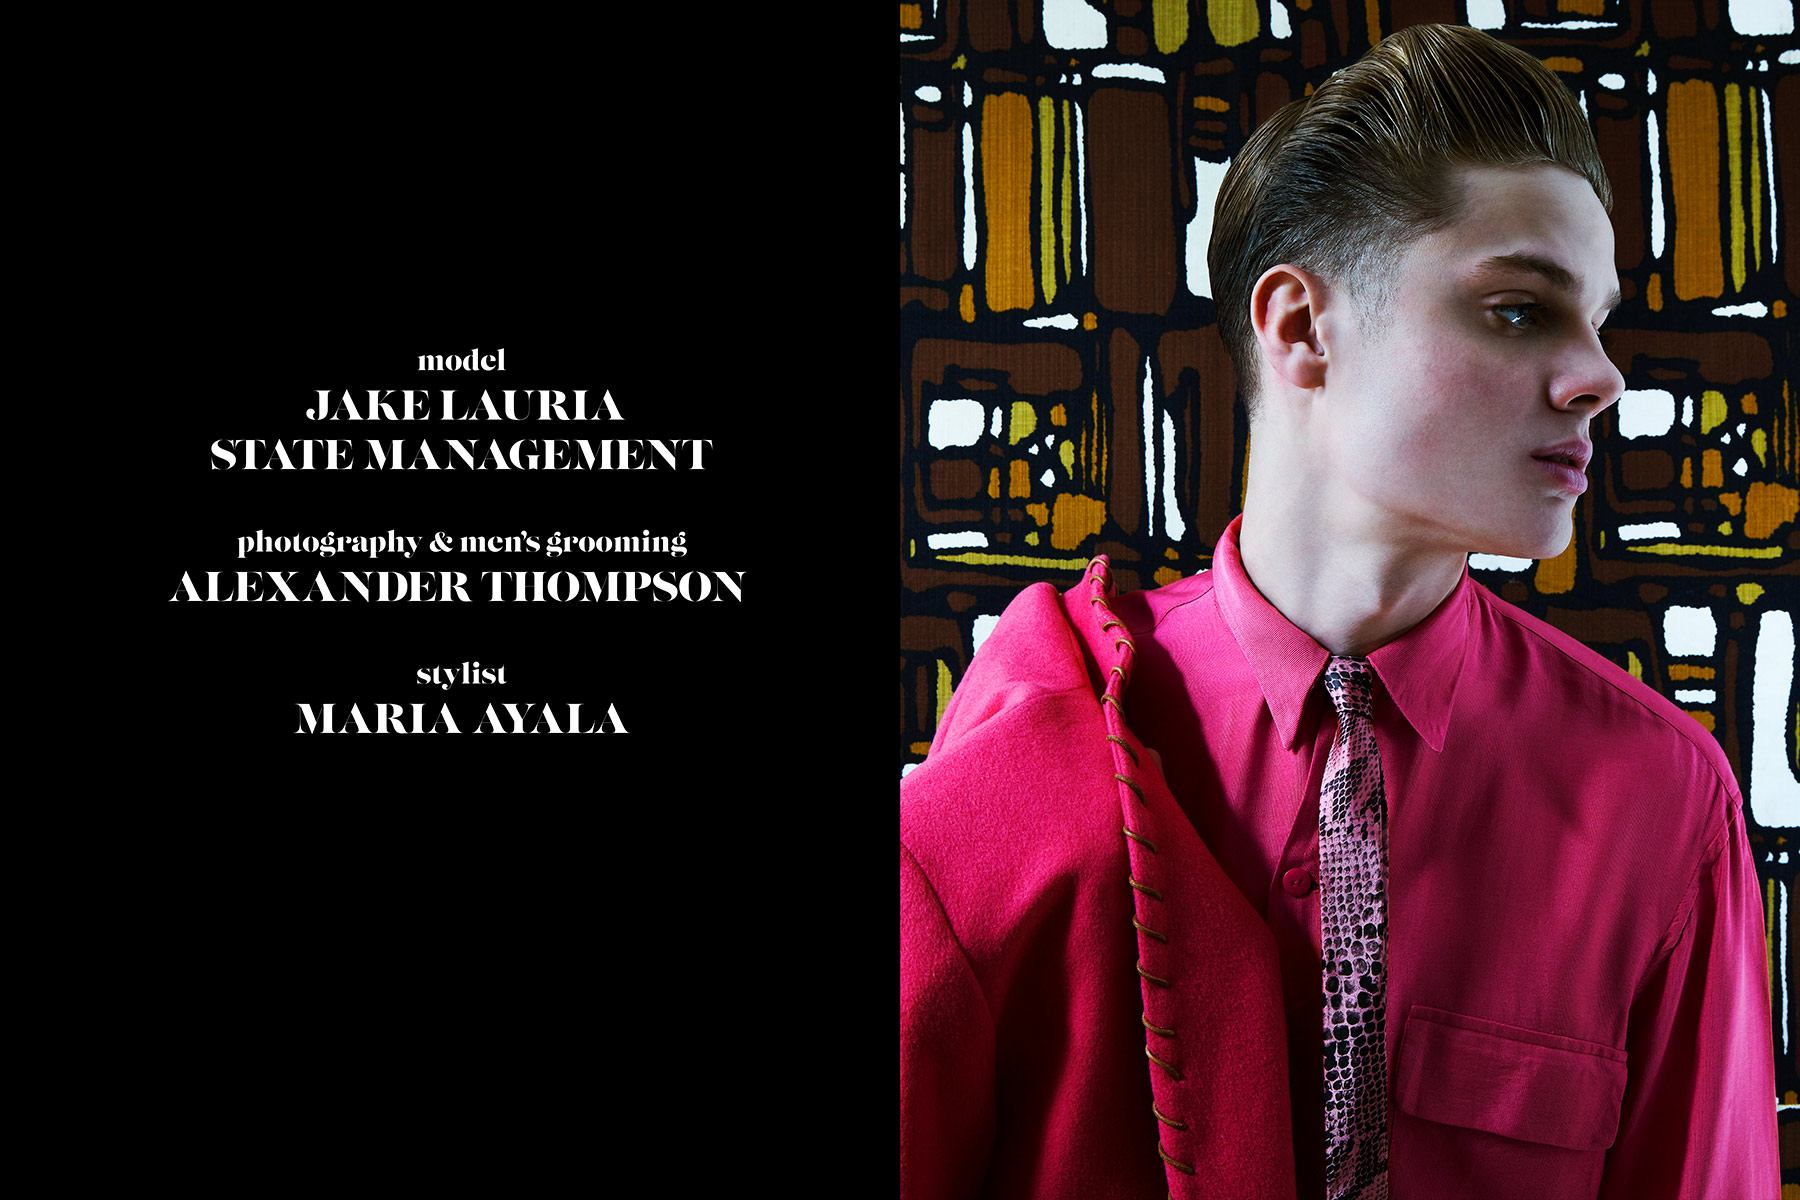 Model Jake Lauria photographed by Alexander Thompson for Ponyboy magazine rockabilly editorial.